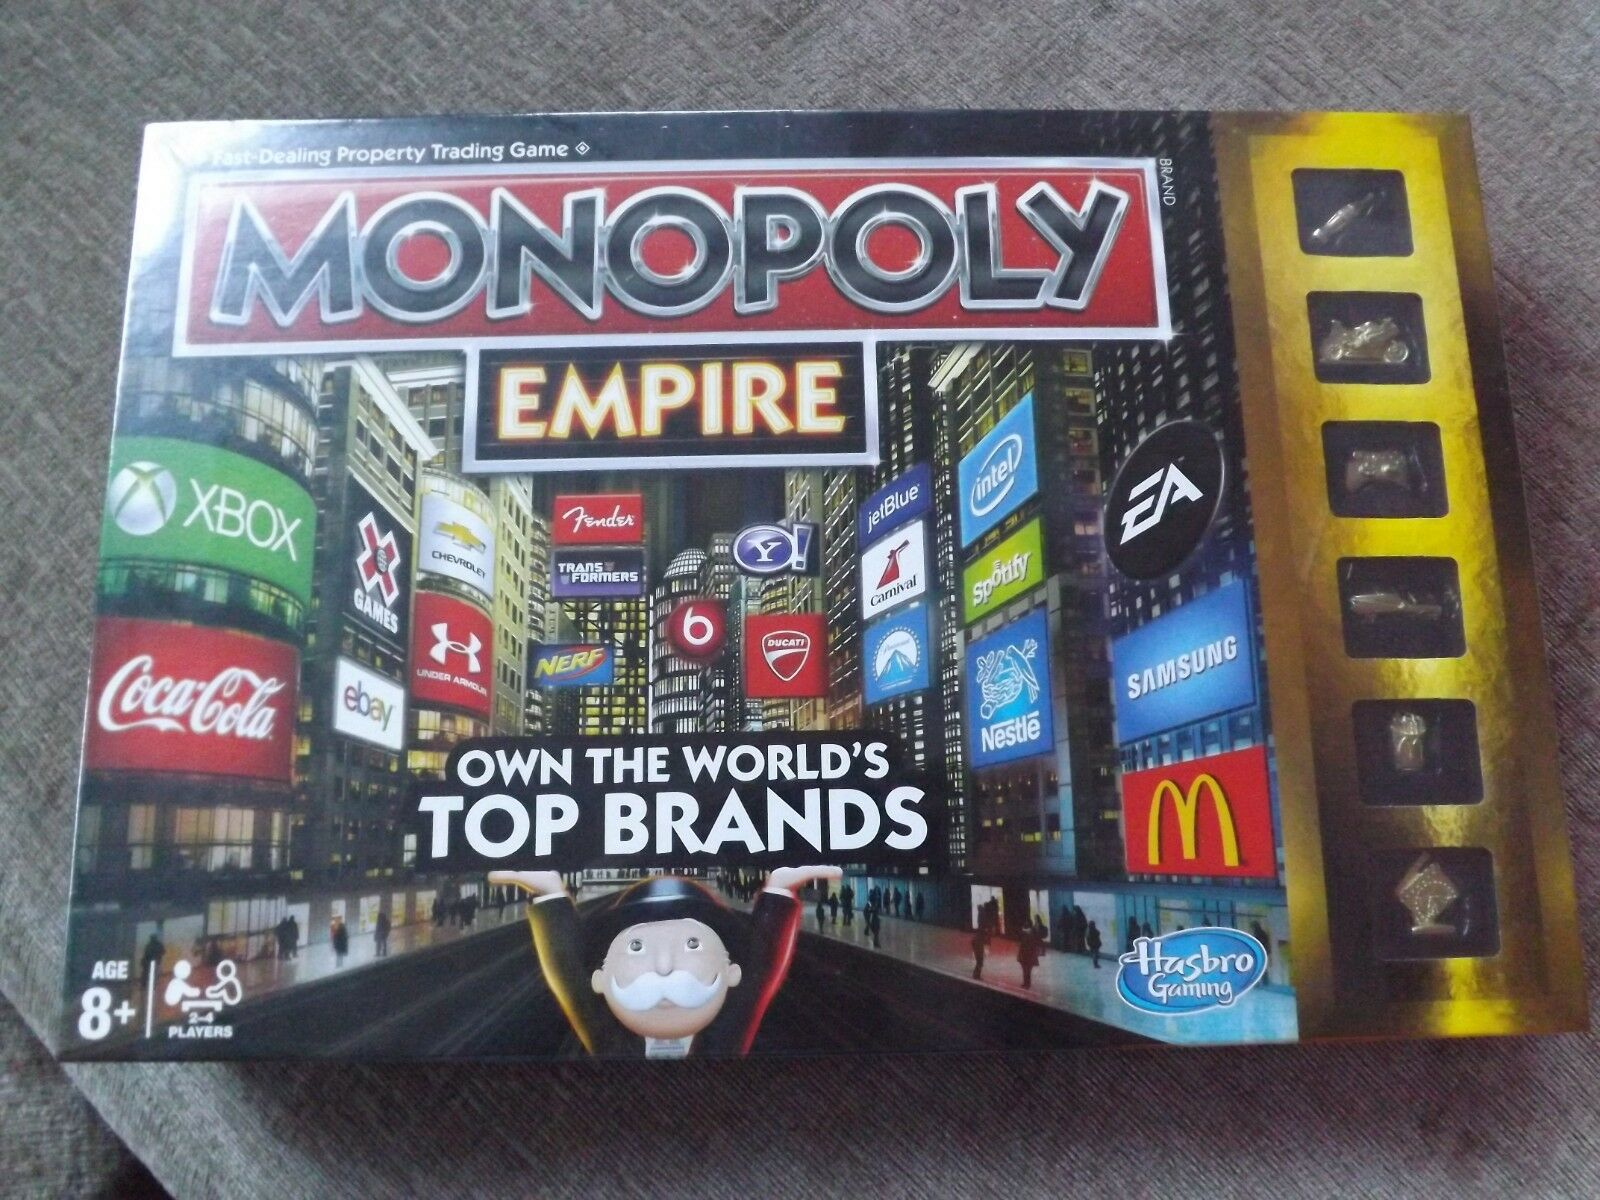 Monopoly Empire Board Game Brand New Sealed original version 2013 2013 2013 propre Top Marques 23a71d